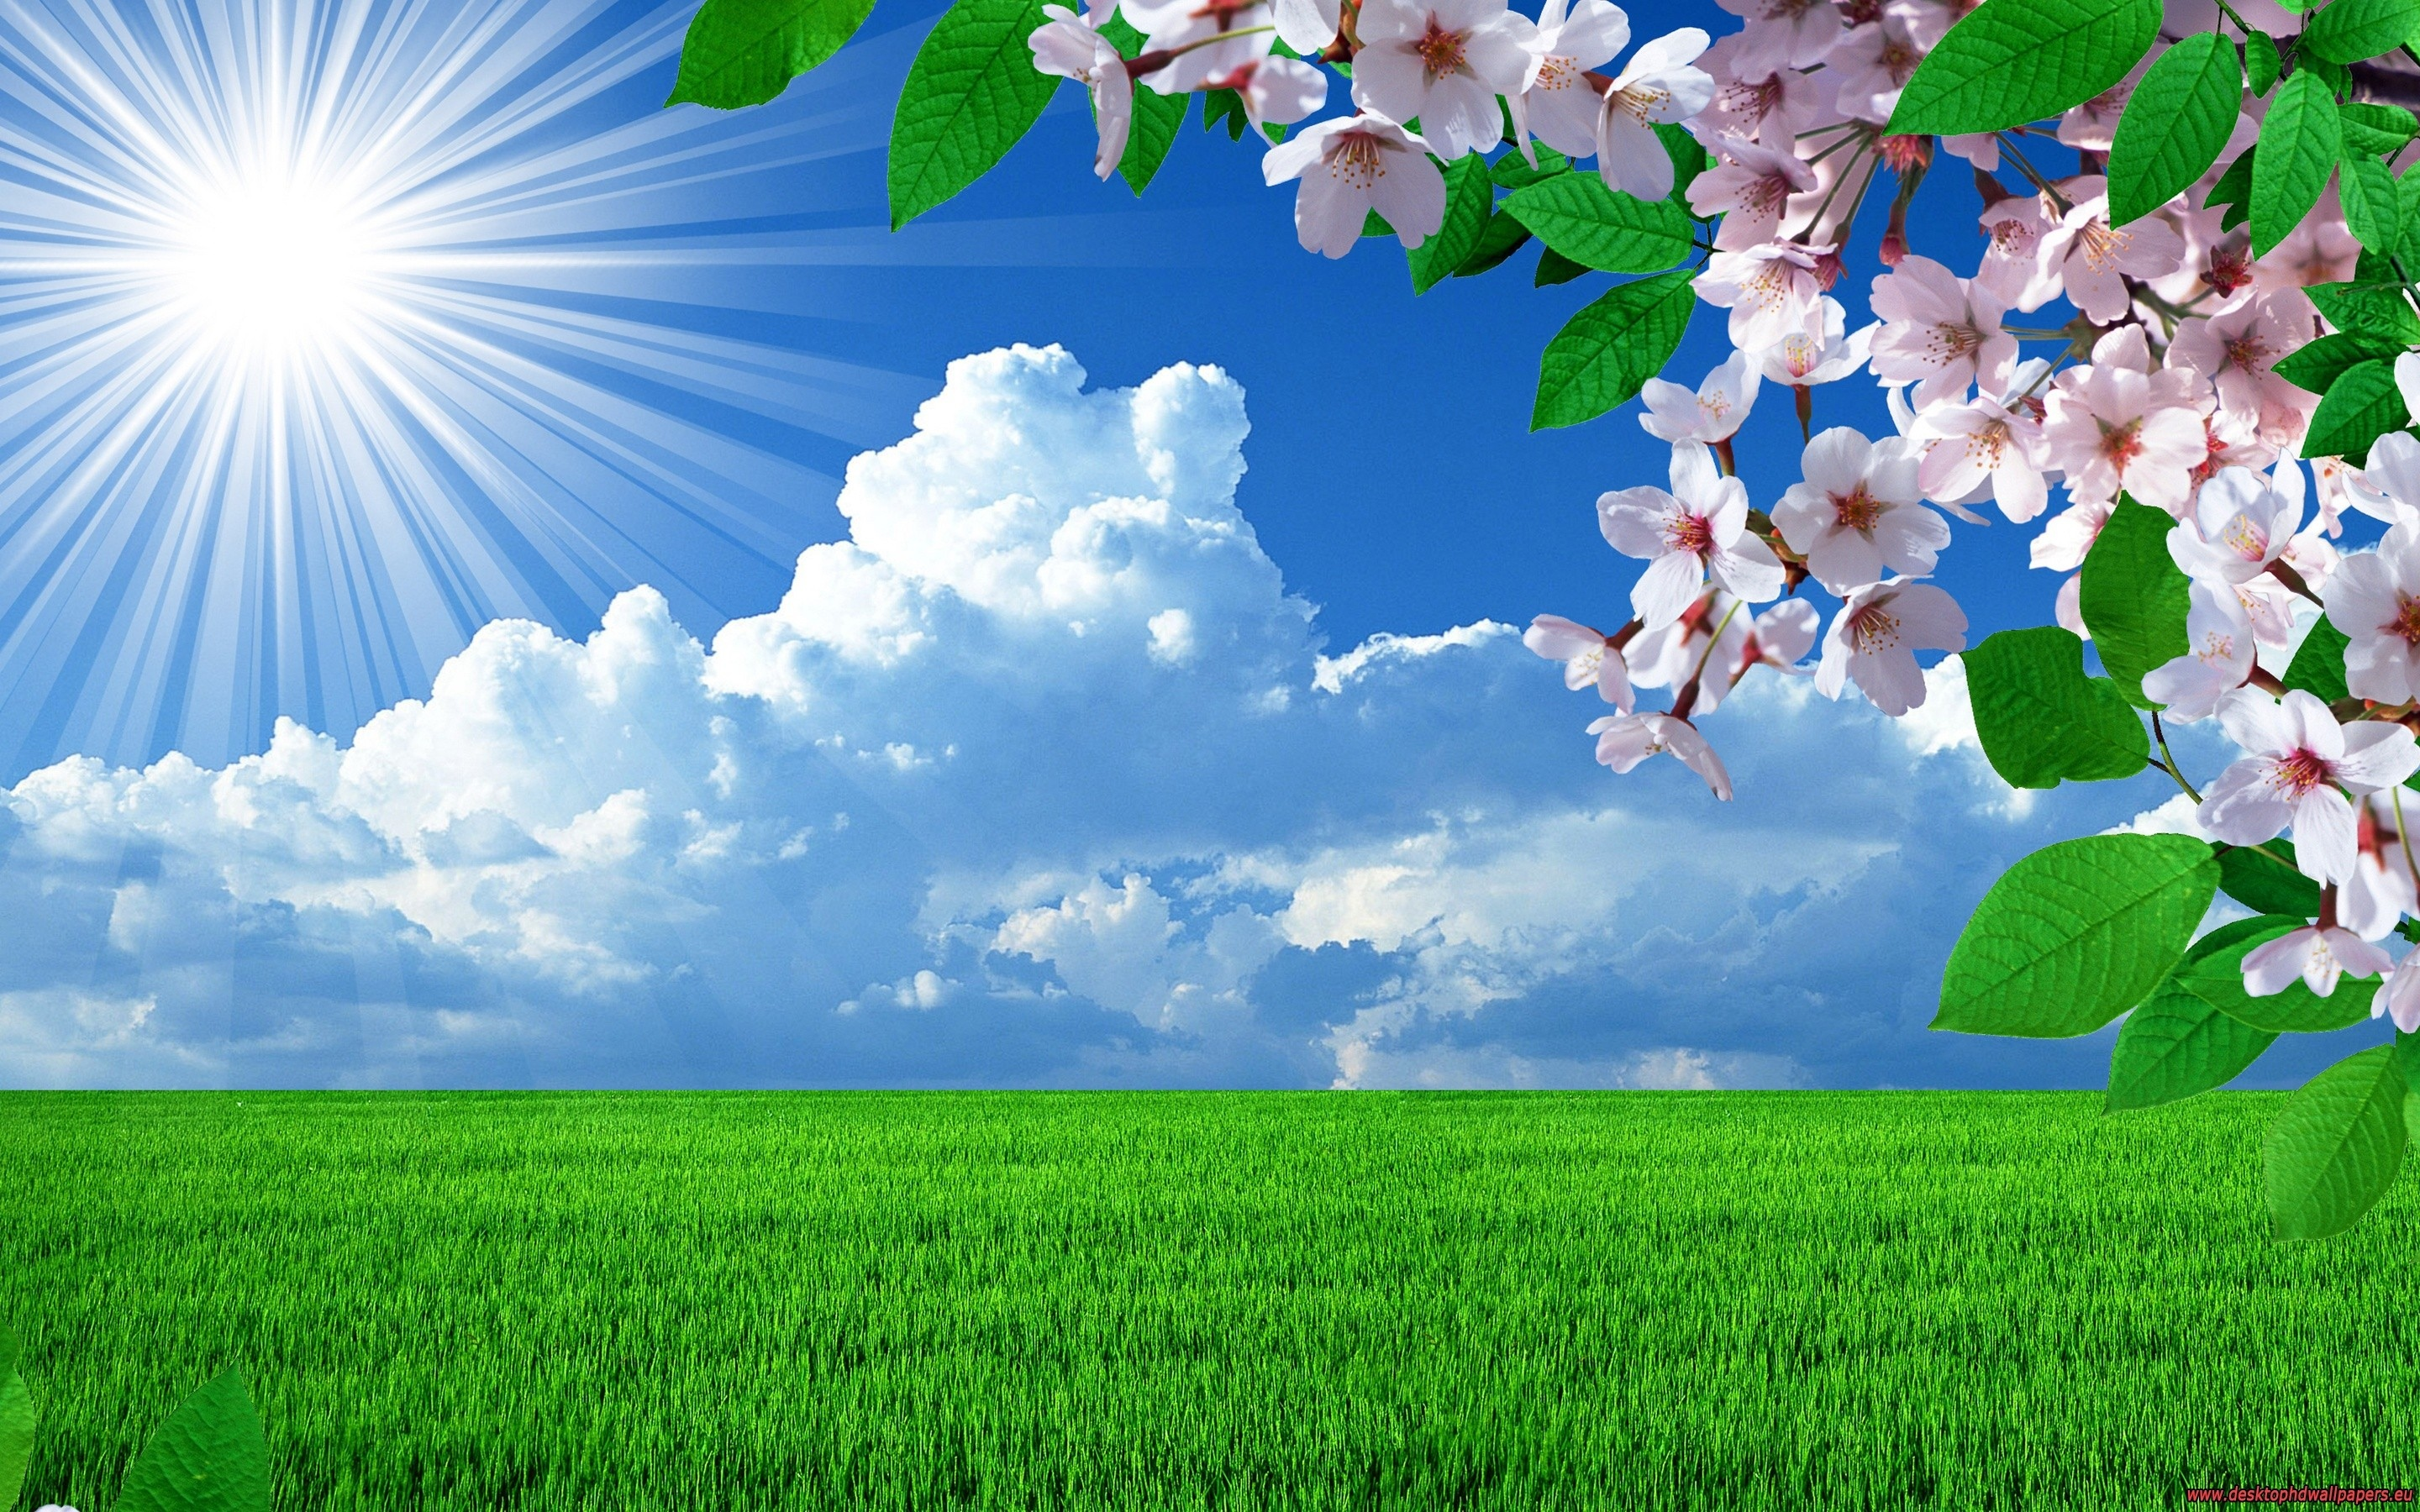 Spring Flowers Landscapes Trees Sky Landscape Wallpaper Background